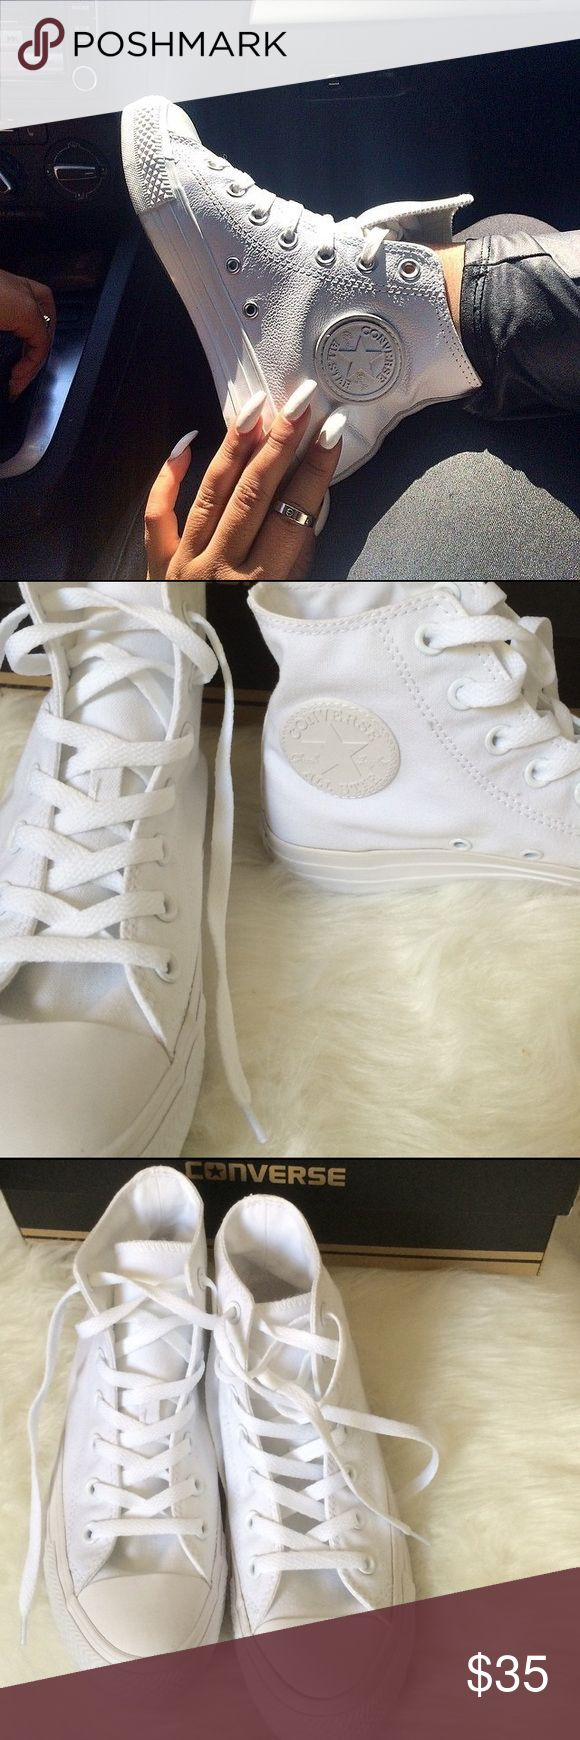 FLASH SALECONVERSE WOMENS SIZE 7 SHOES WHITE Size 7 Converse Shoes Sneakers